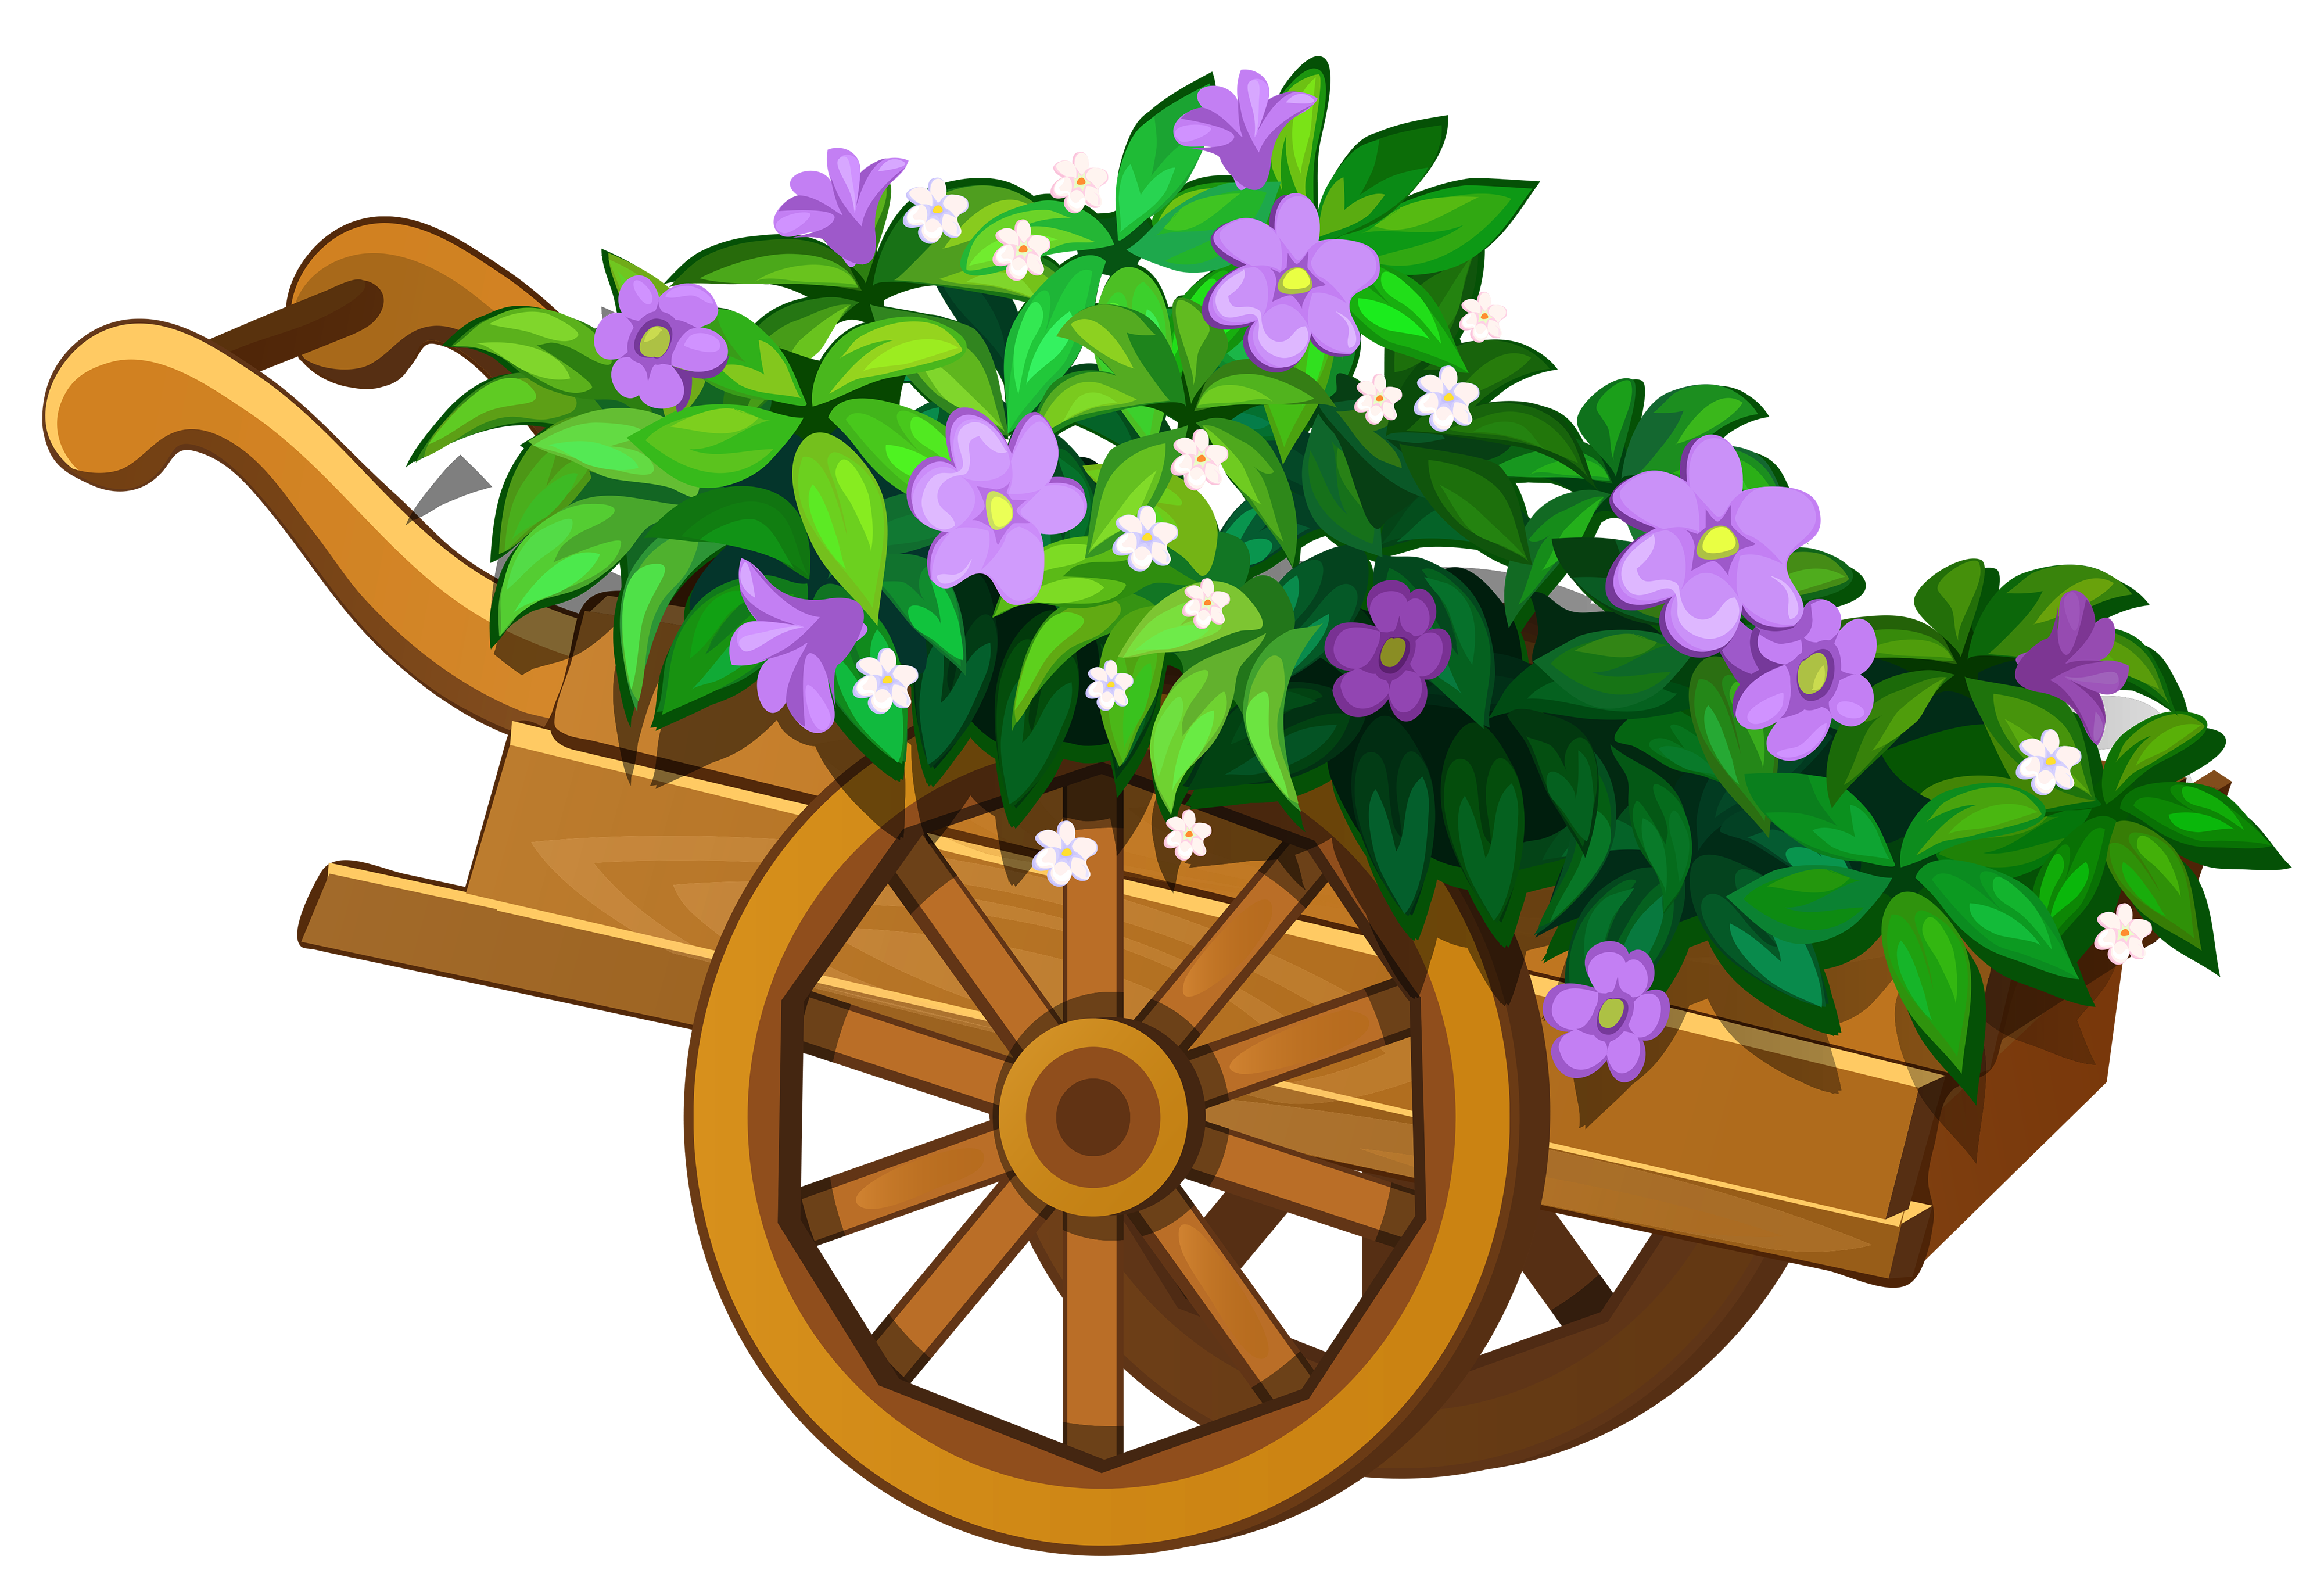 Flower box clipart.